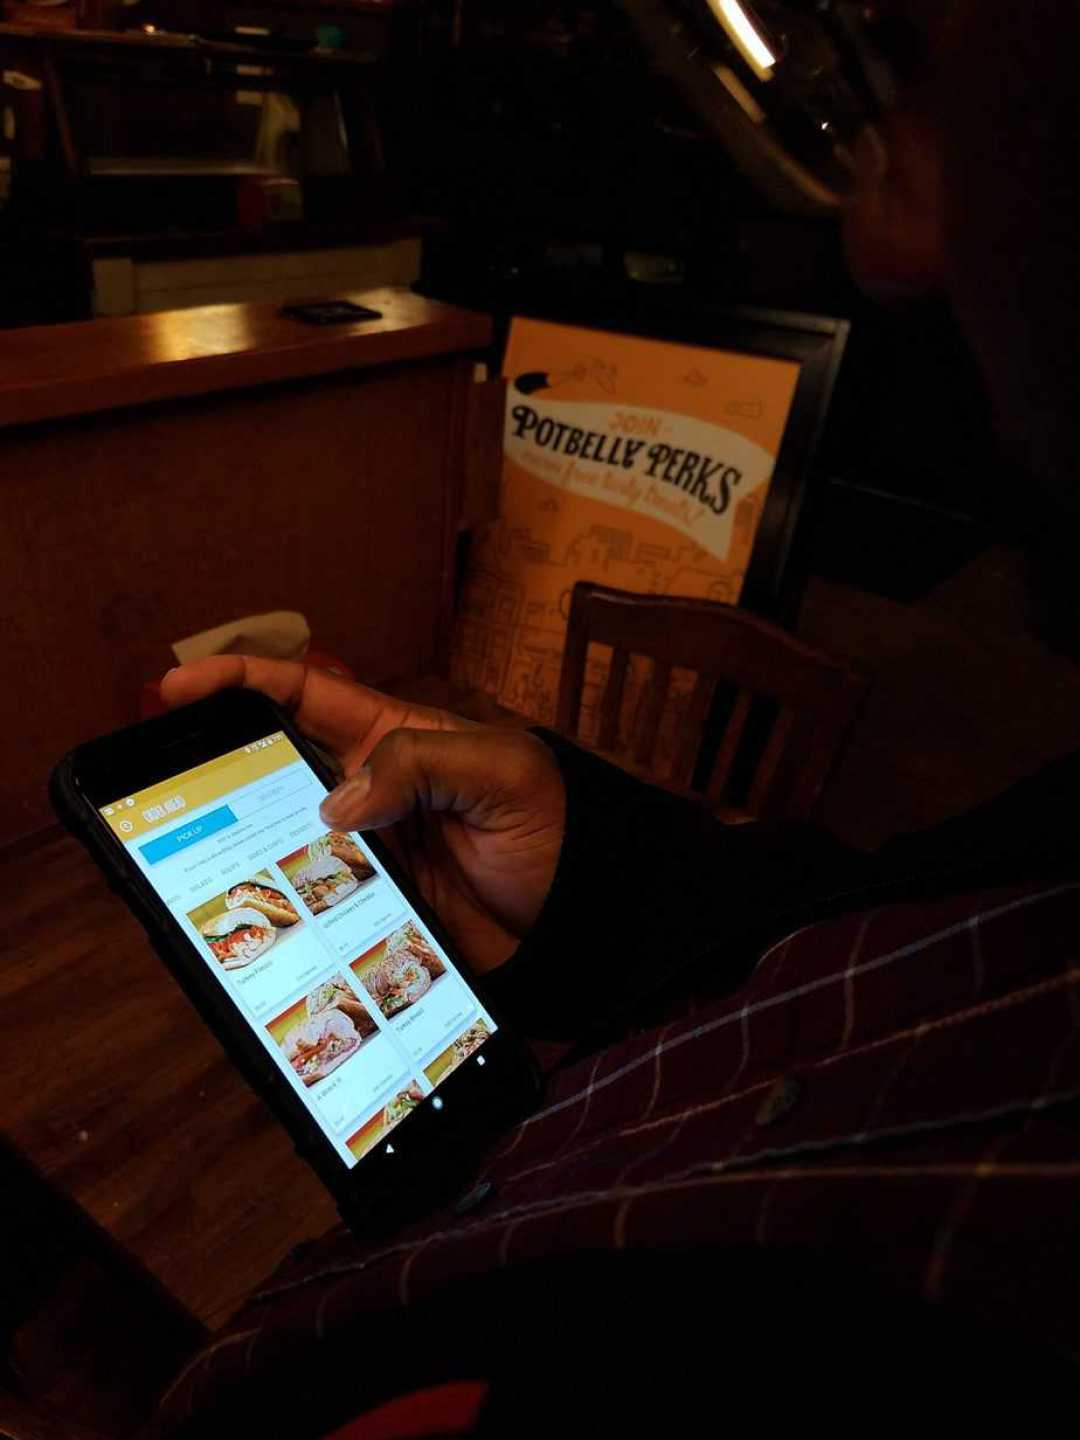 Potbelly Sandwich Shop Has a New App!